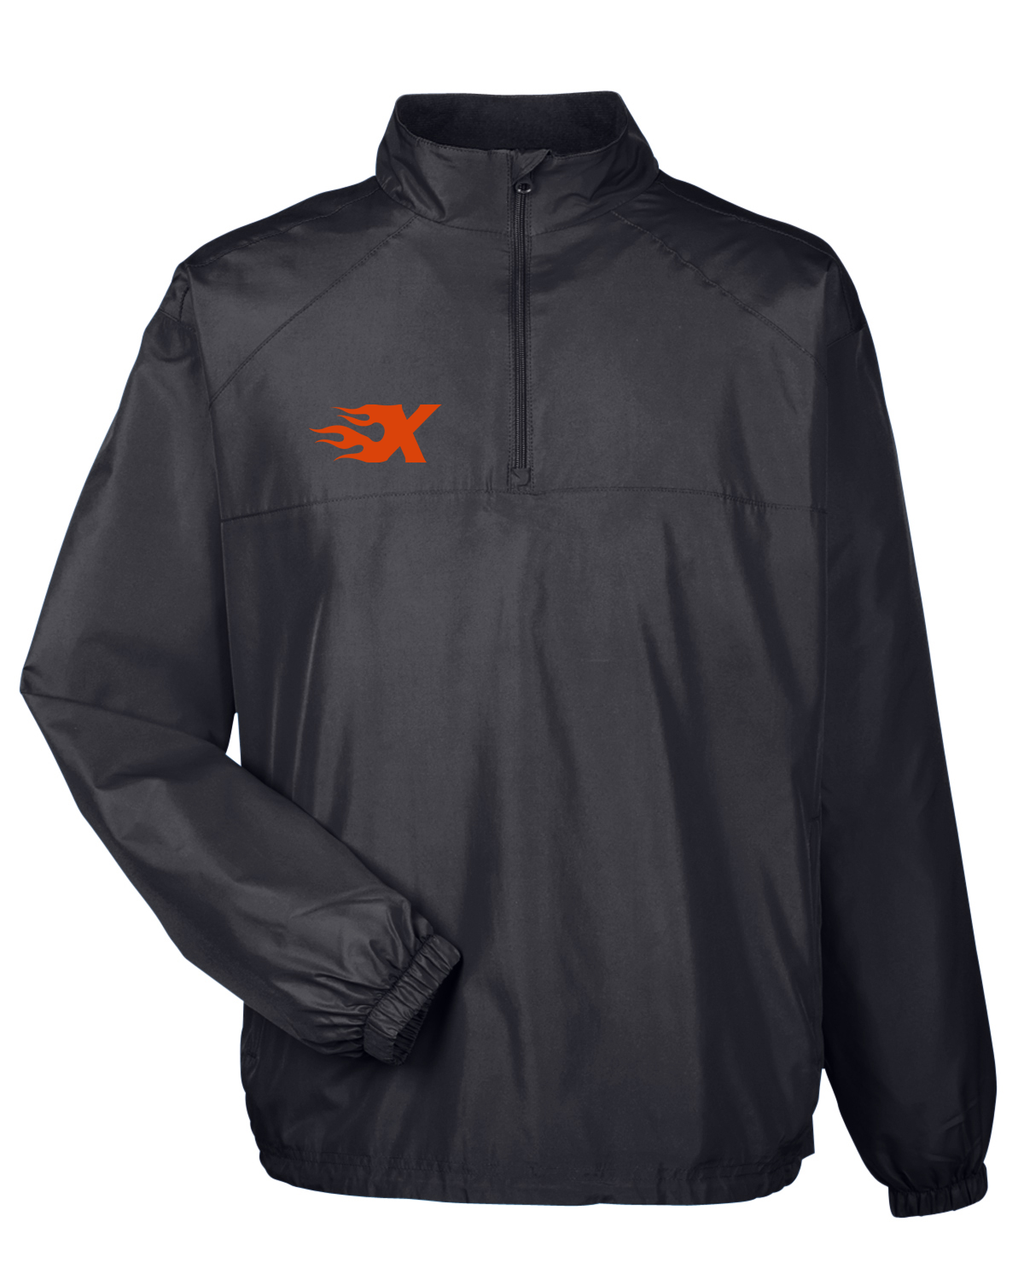 Xtreme Lacrosse Black Windbreaker